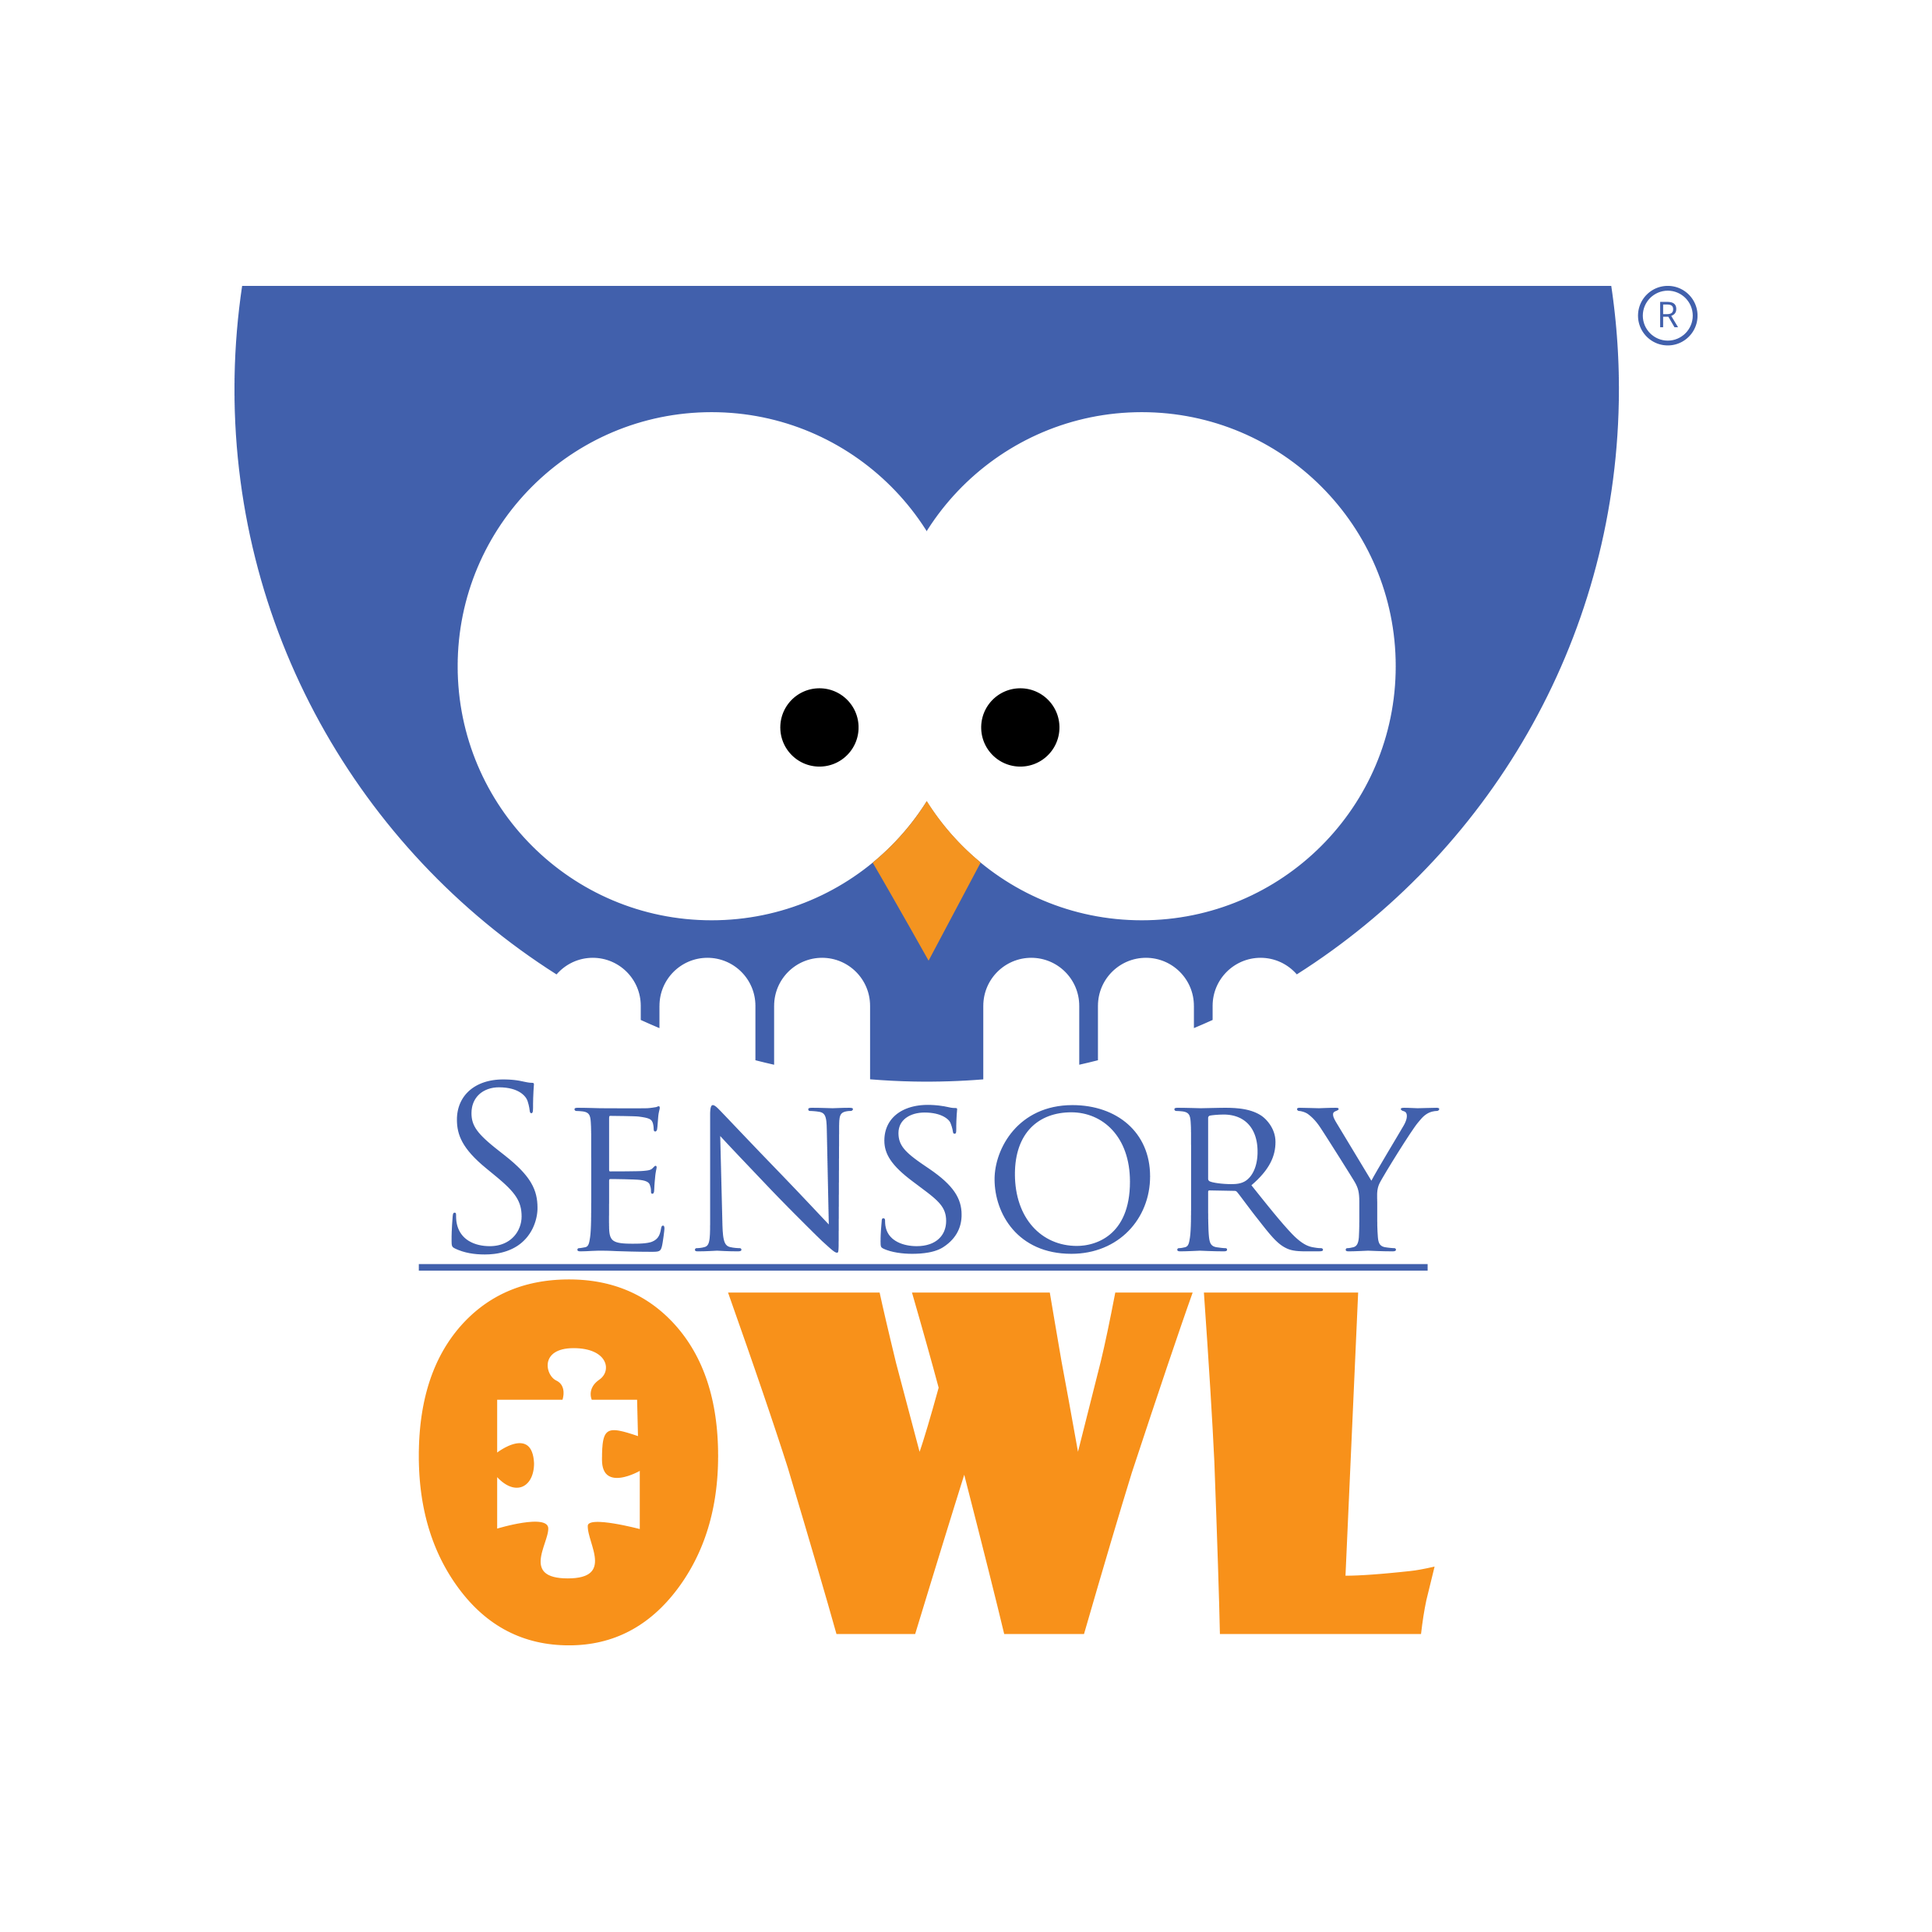 Sensory Products UK | sensoryowl co uk – Sensory Owl